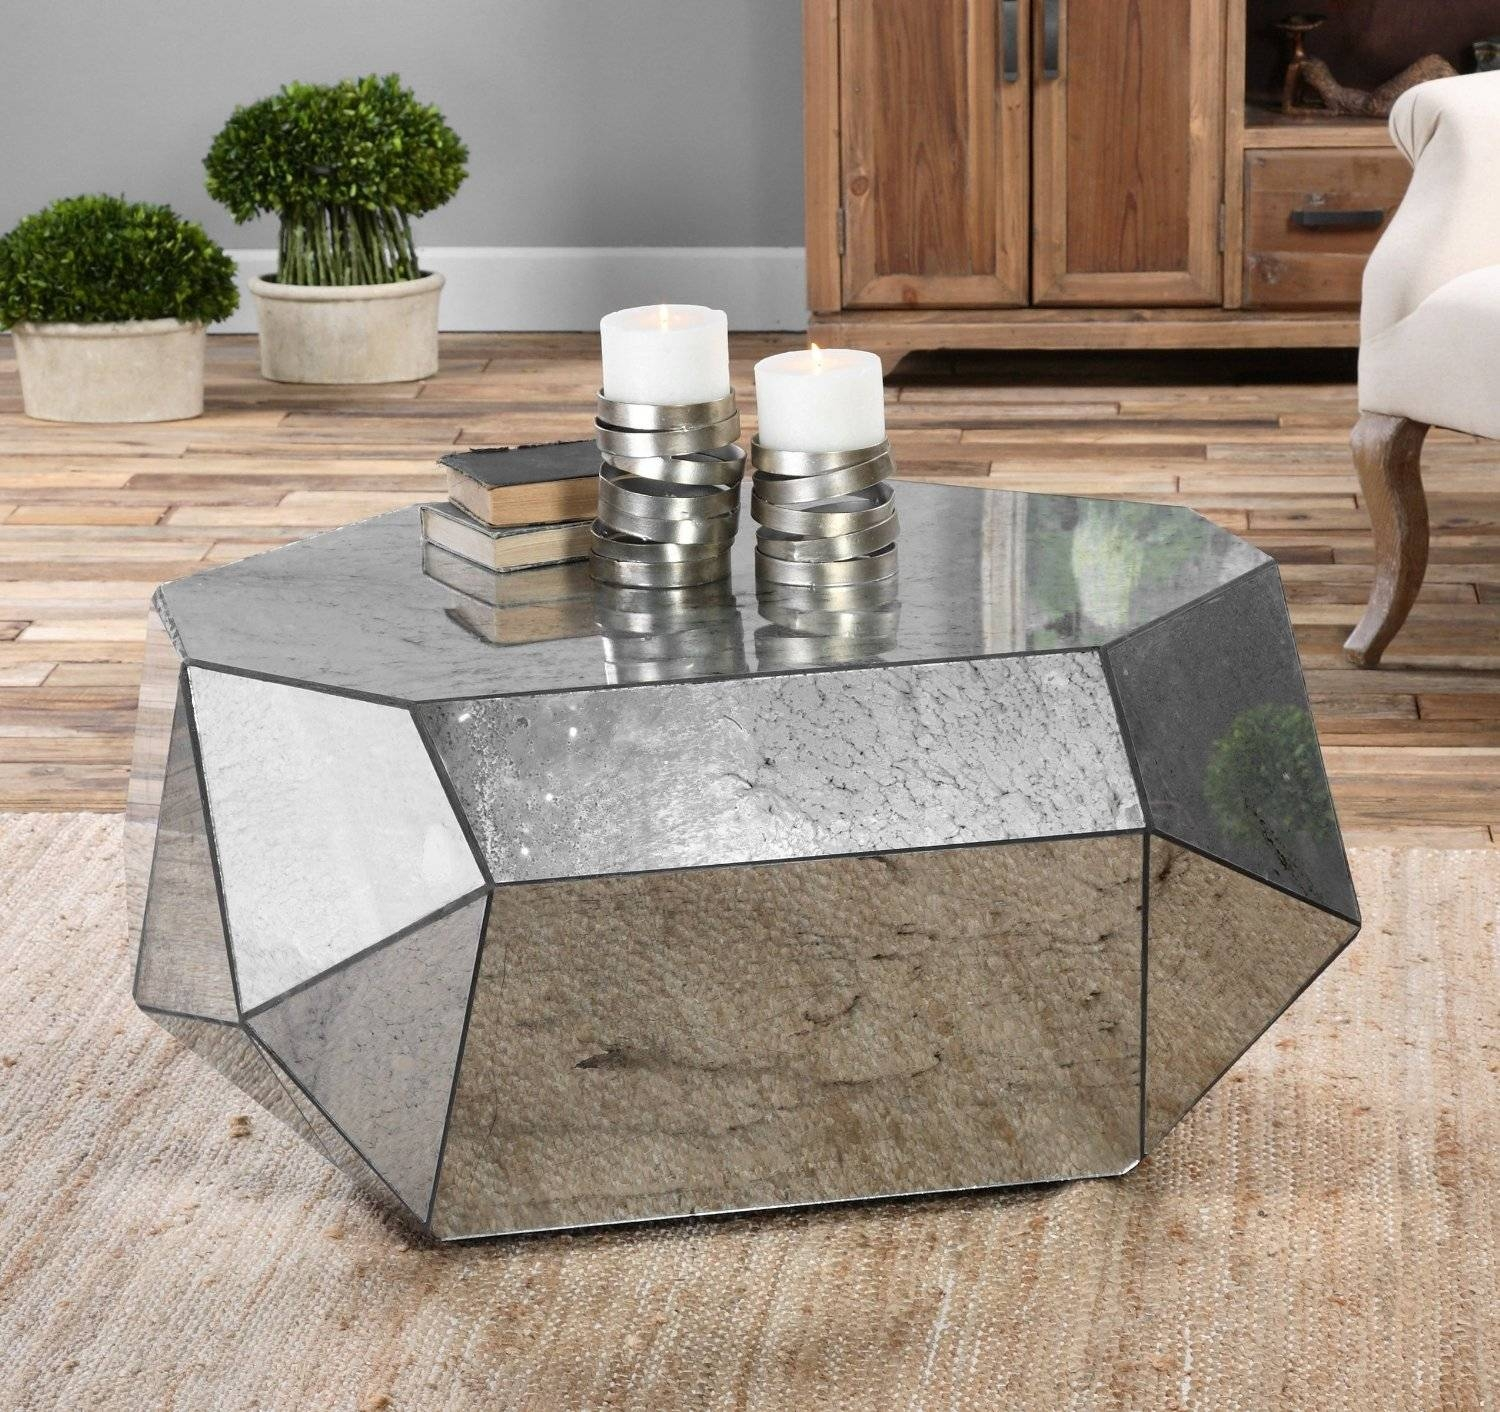 9 Geometric Coffee Tables To Perfectly Align Your Life In Coffee Tables Mirrored (View 1 of 30)